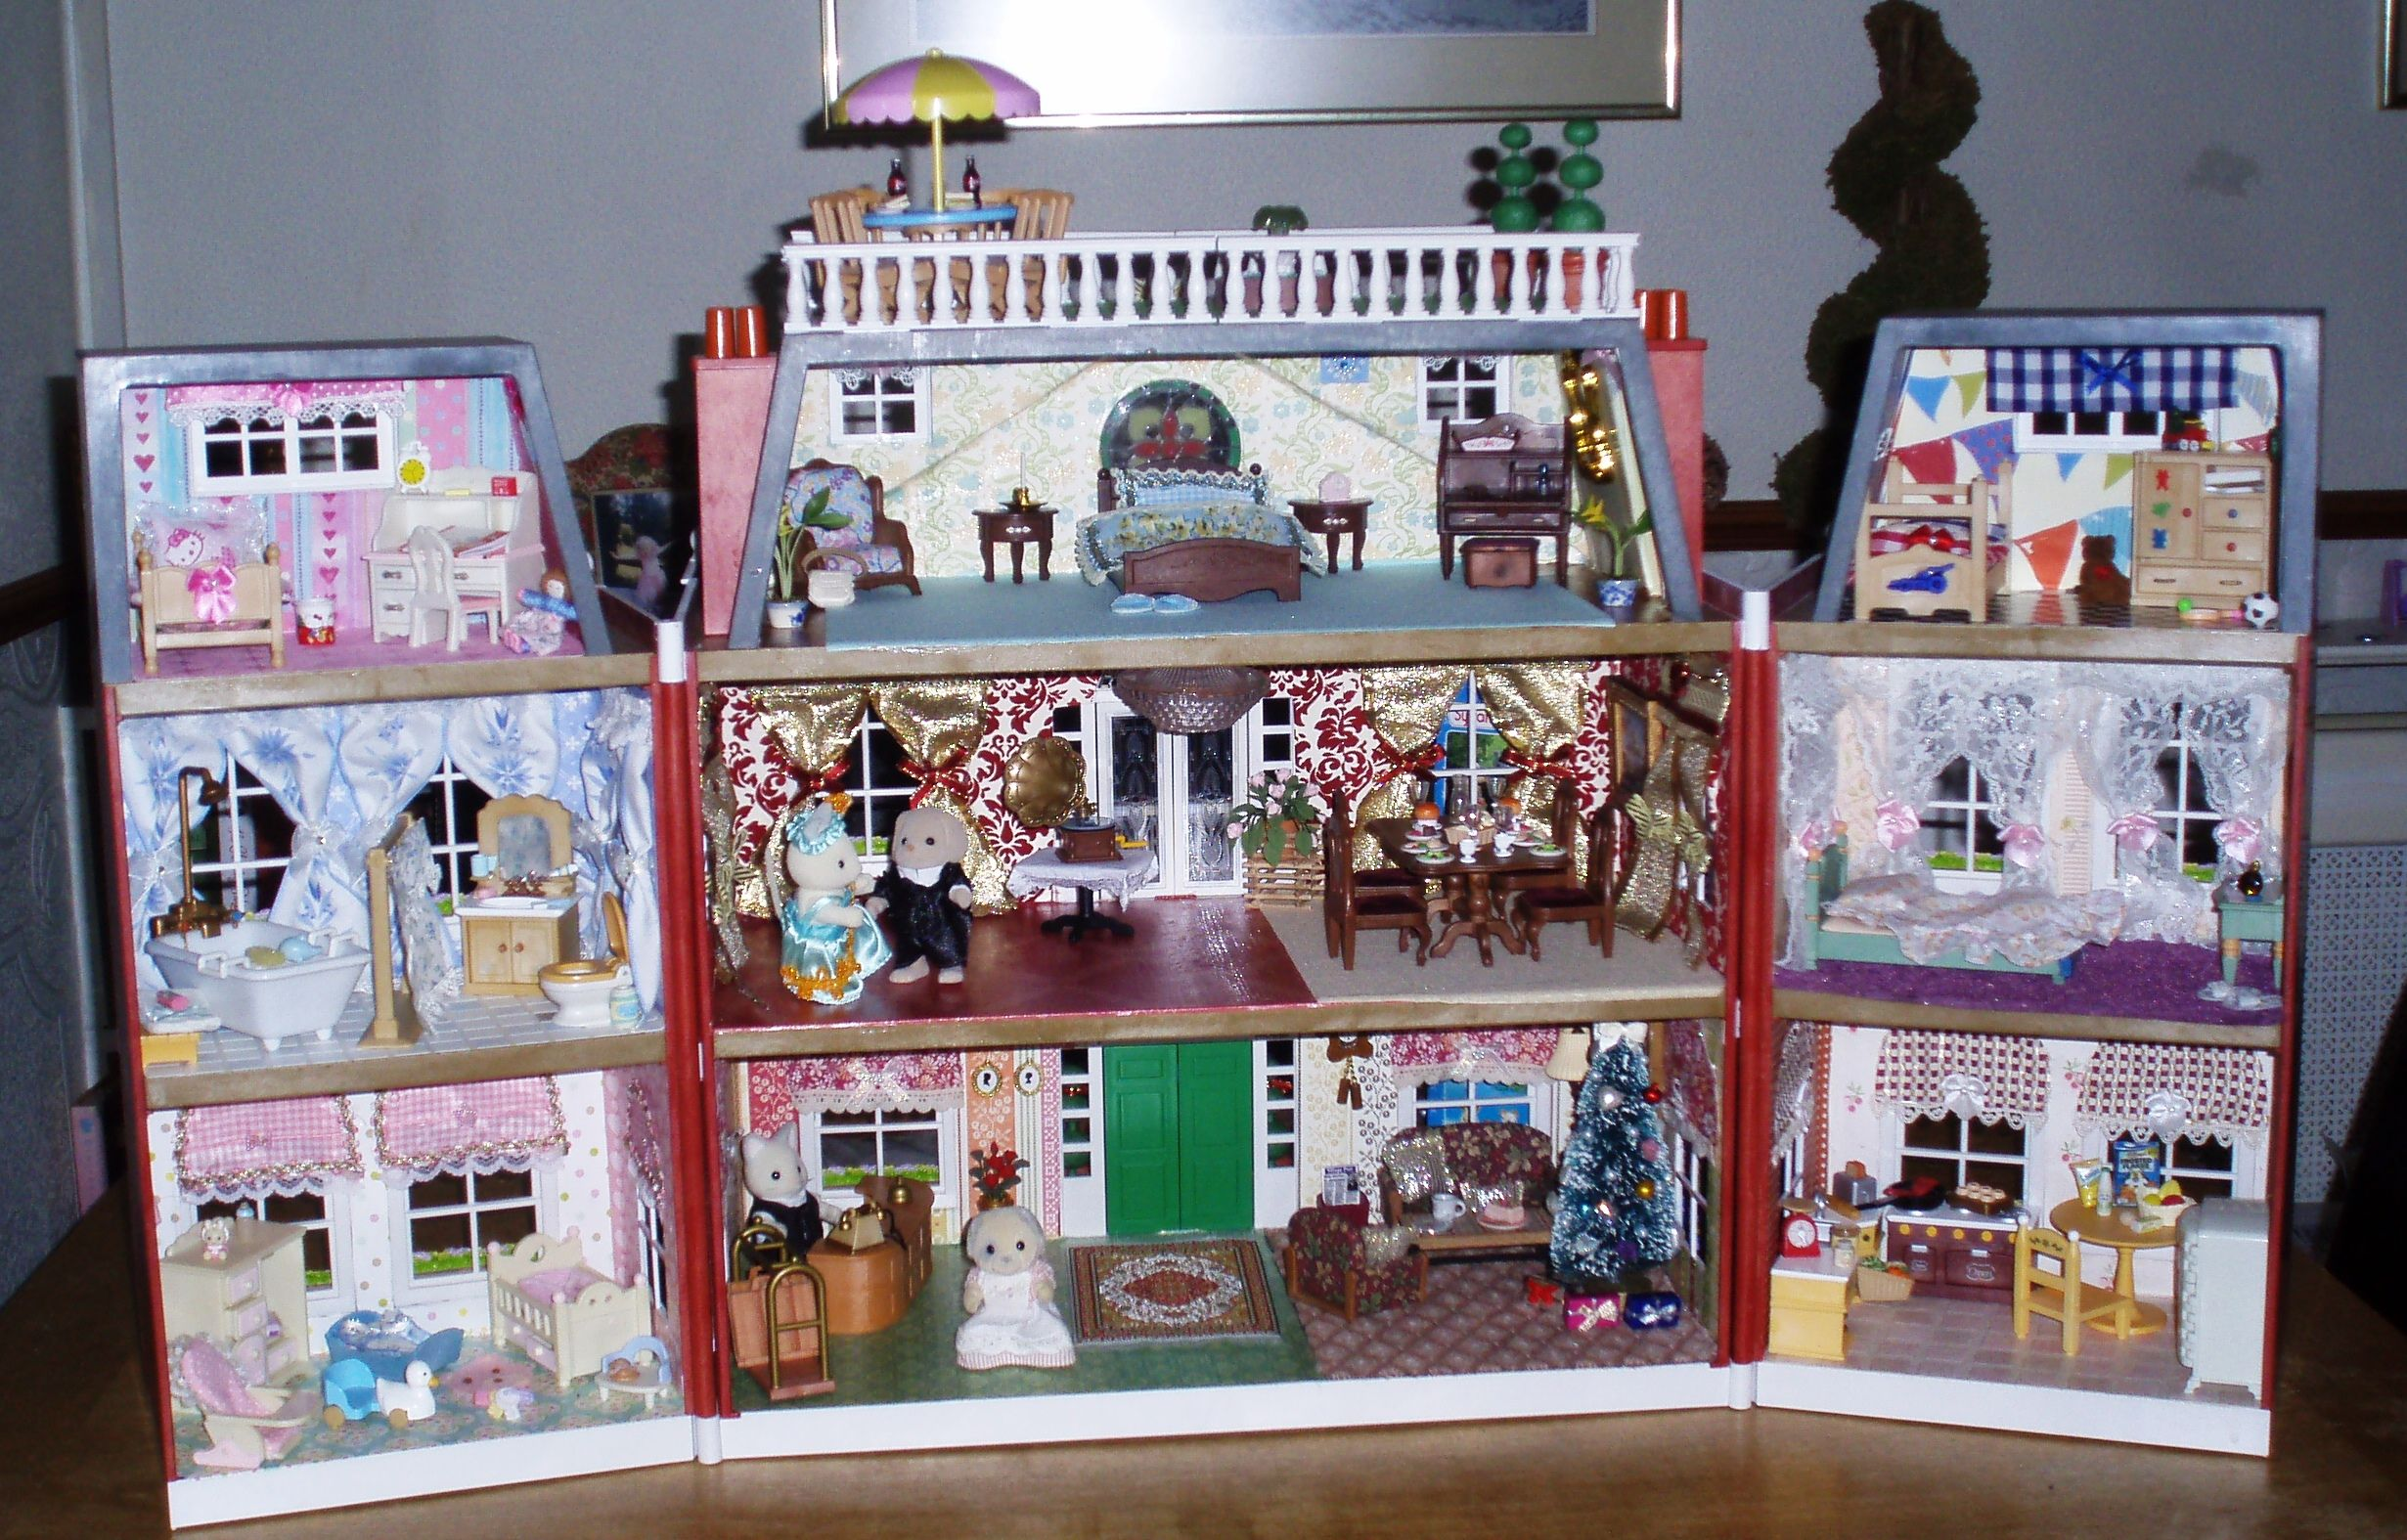 Regency Hotel - decorated with furniture and figures for an amazing playtime!!!